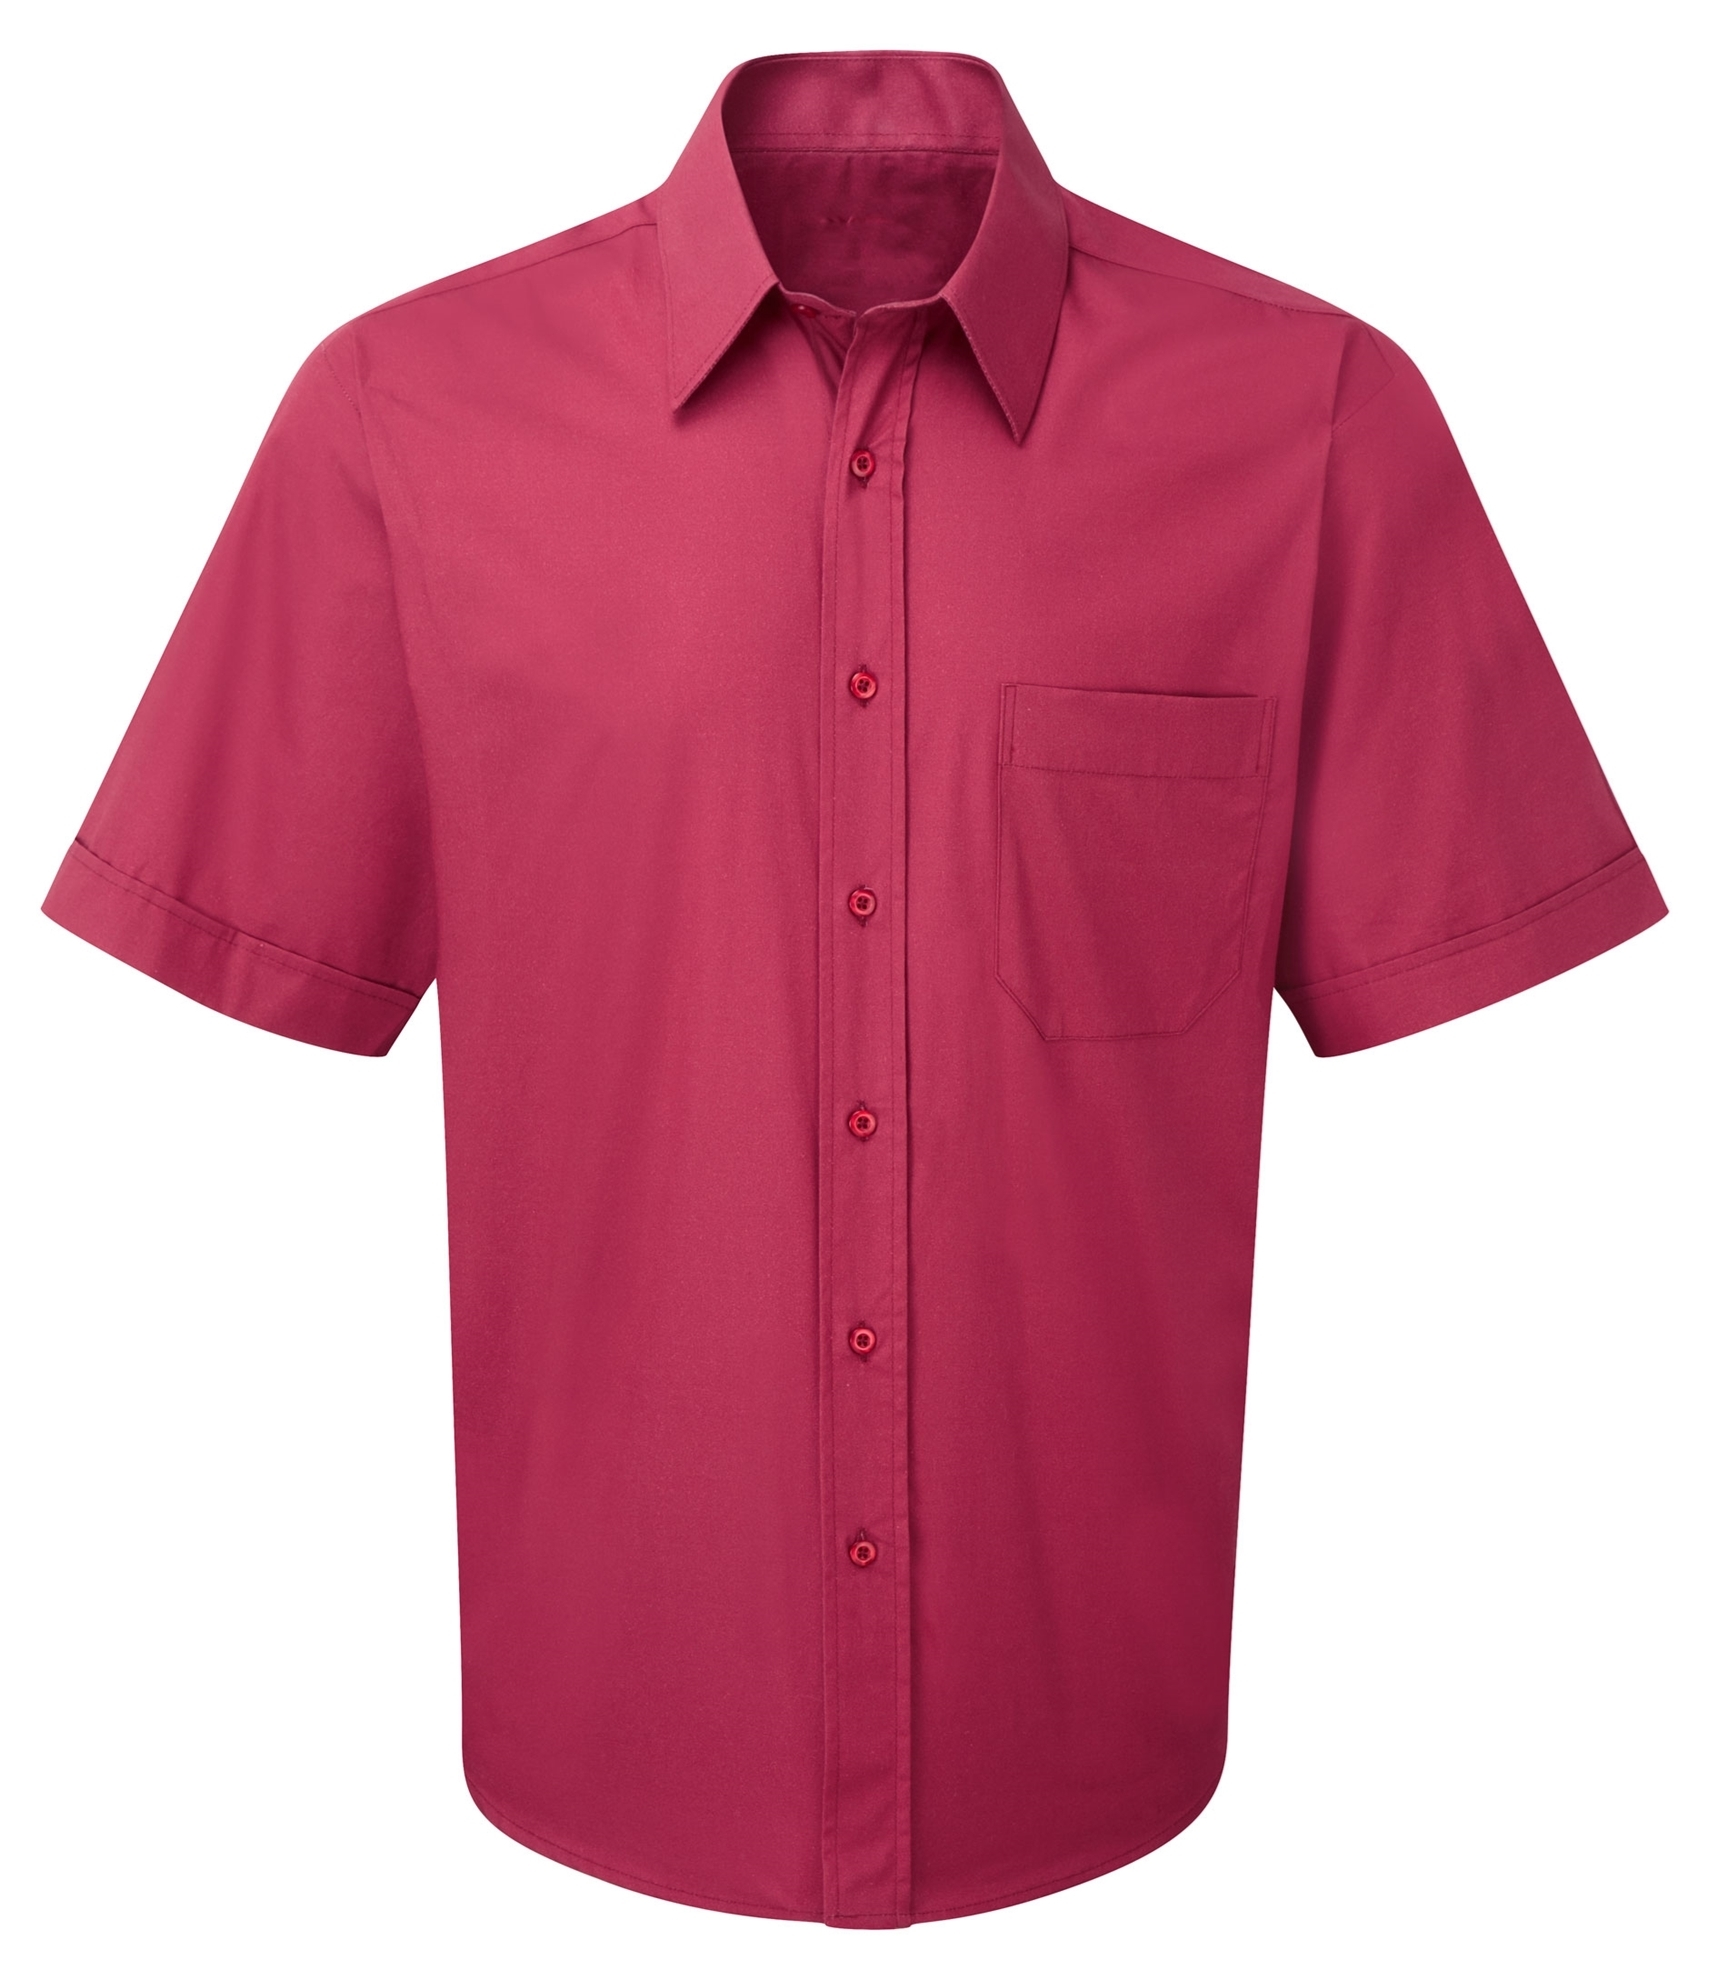 Picture of Male Short Sleeve Shirt - Plain Berry